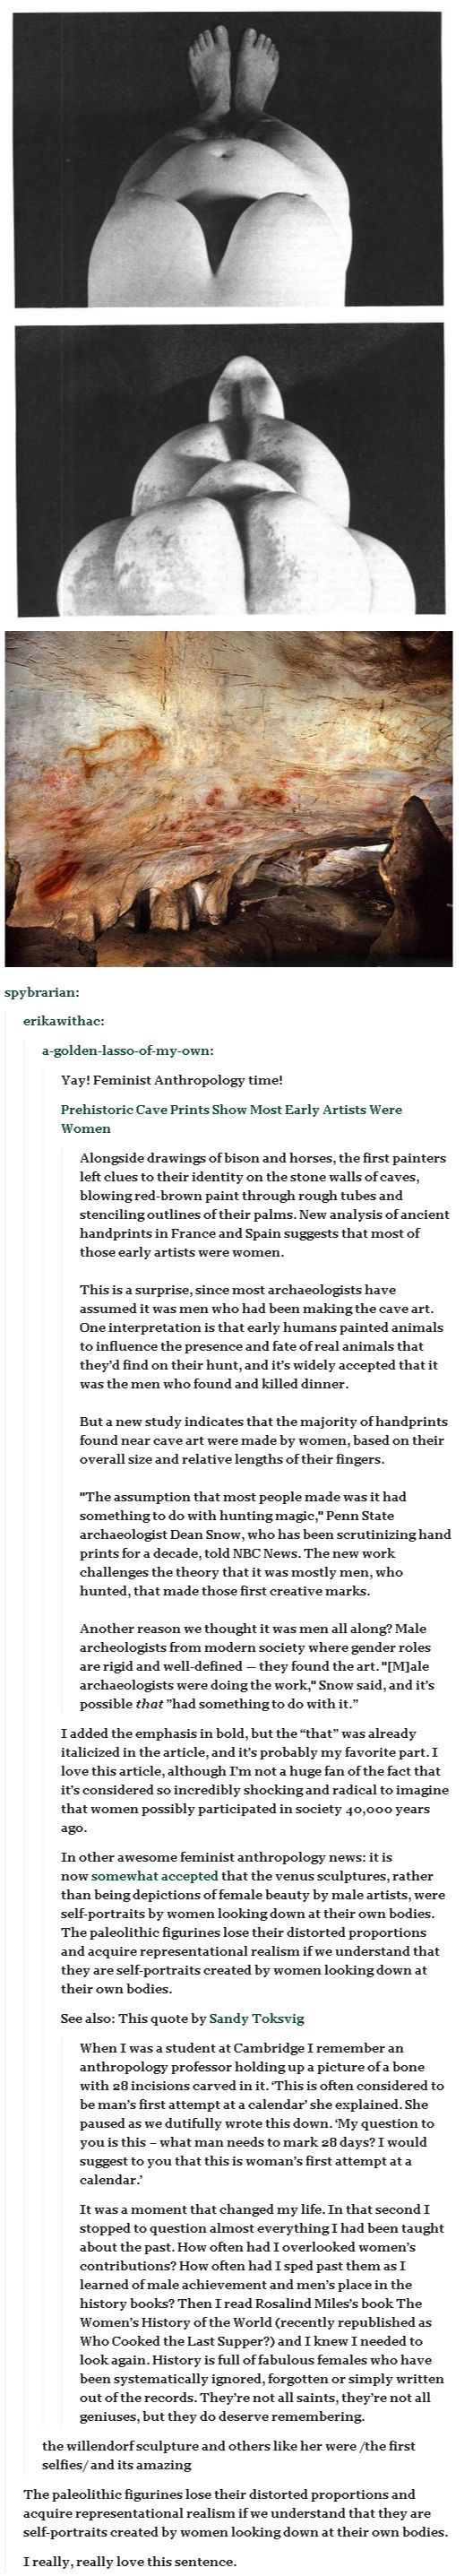 the best early humans ideas stone age human  why early artists were likely women > funny how it s so hard for anyone to believe that women were viewed as contributing members of society since the